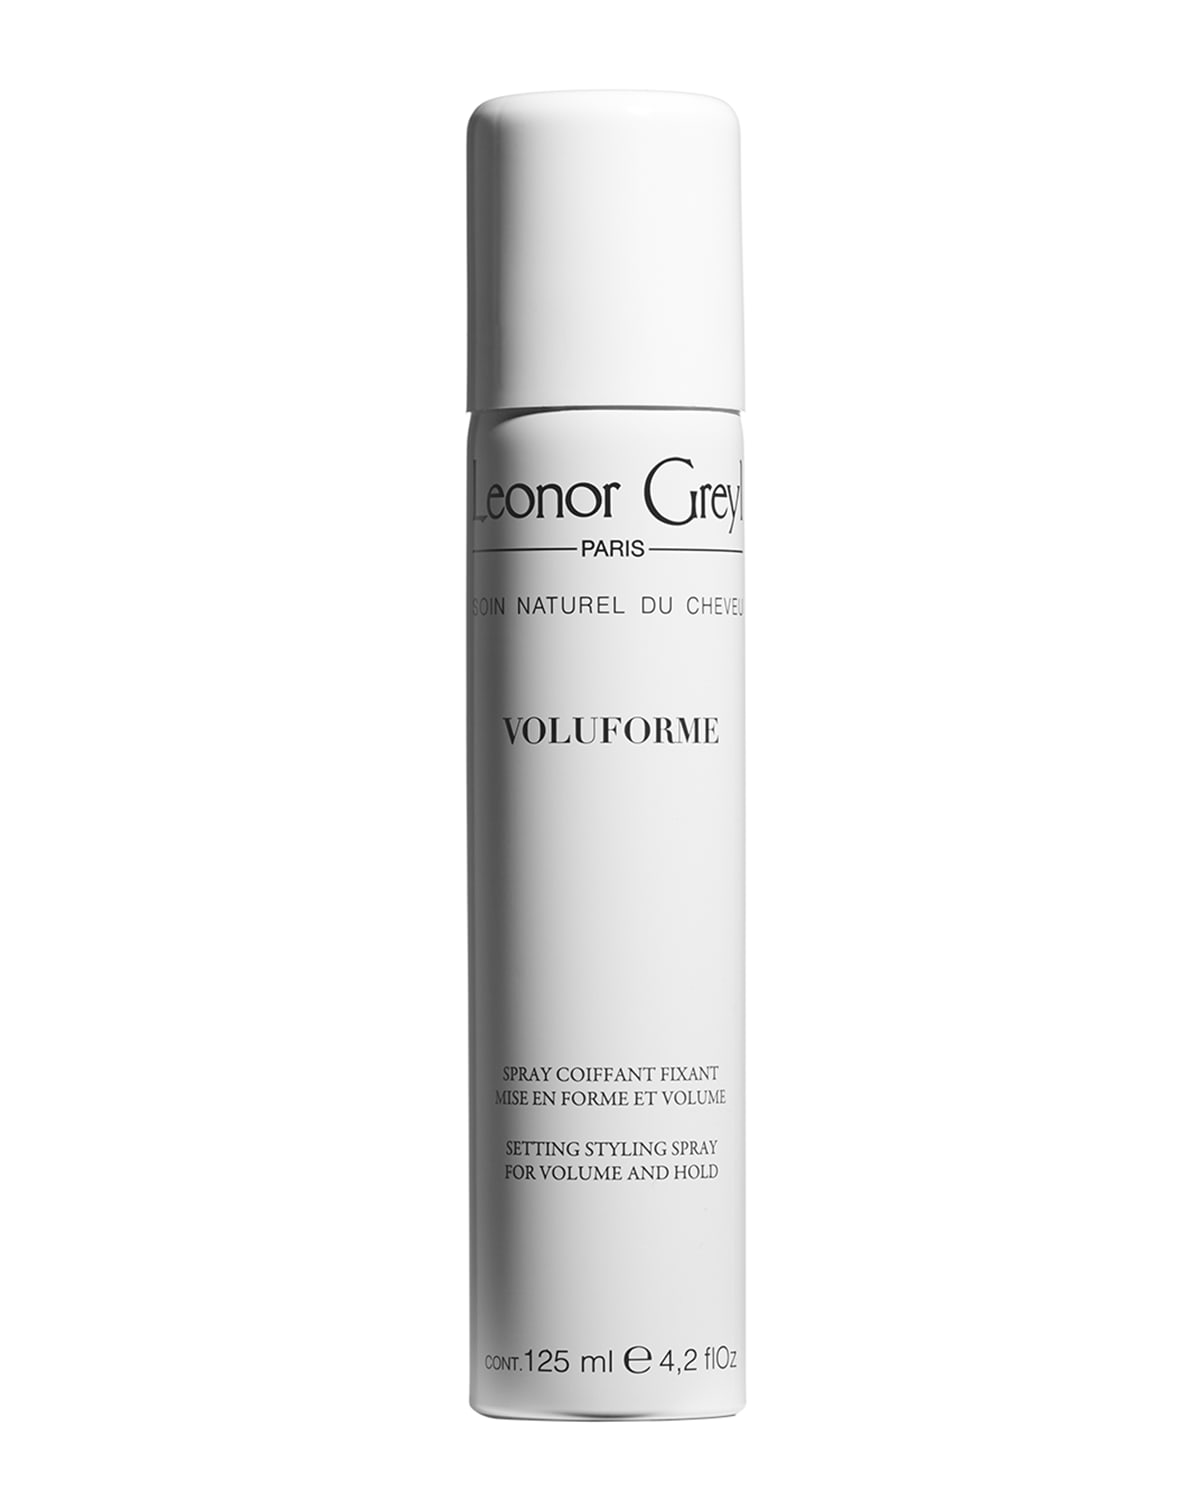 Voluforme (Styling Spray for Volume and Hold)